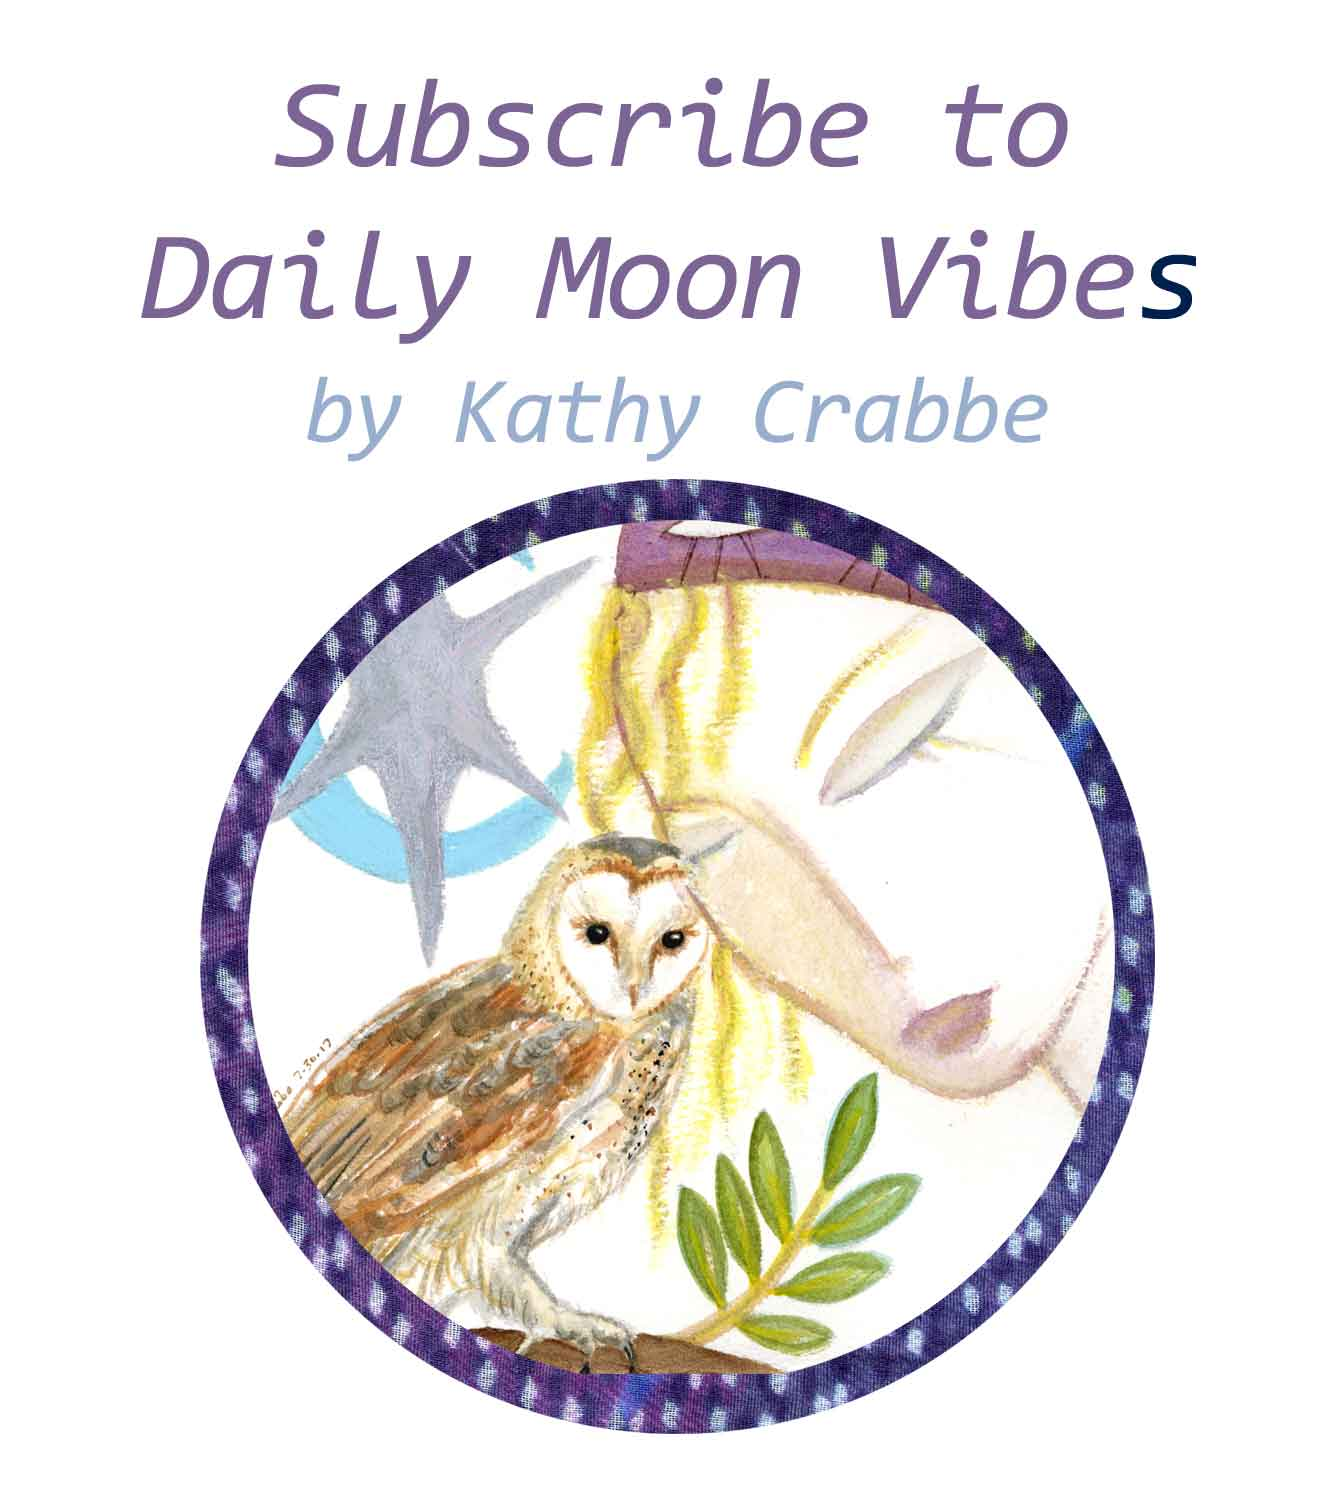 Daily Moon Vibes by Kathy Crabbe